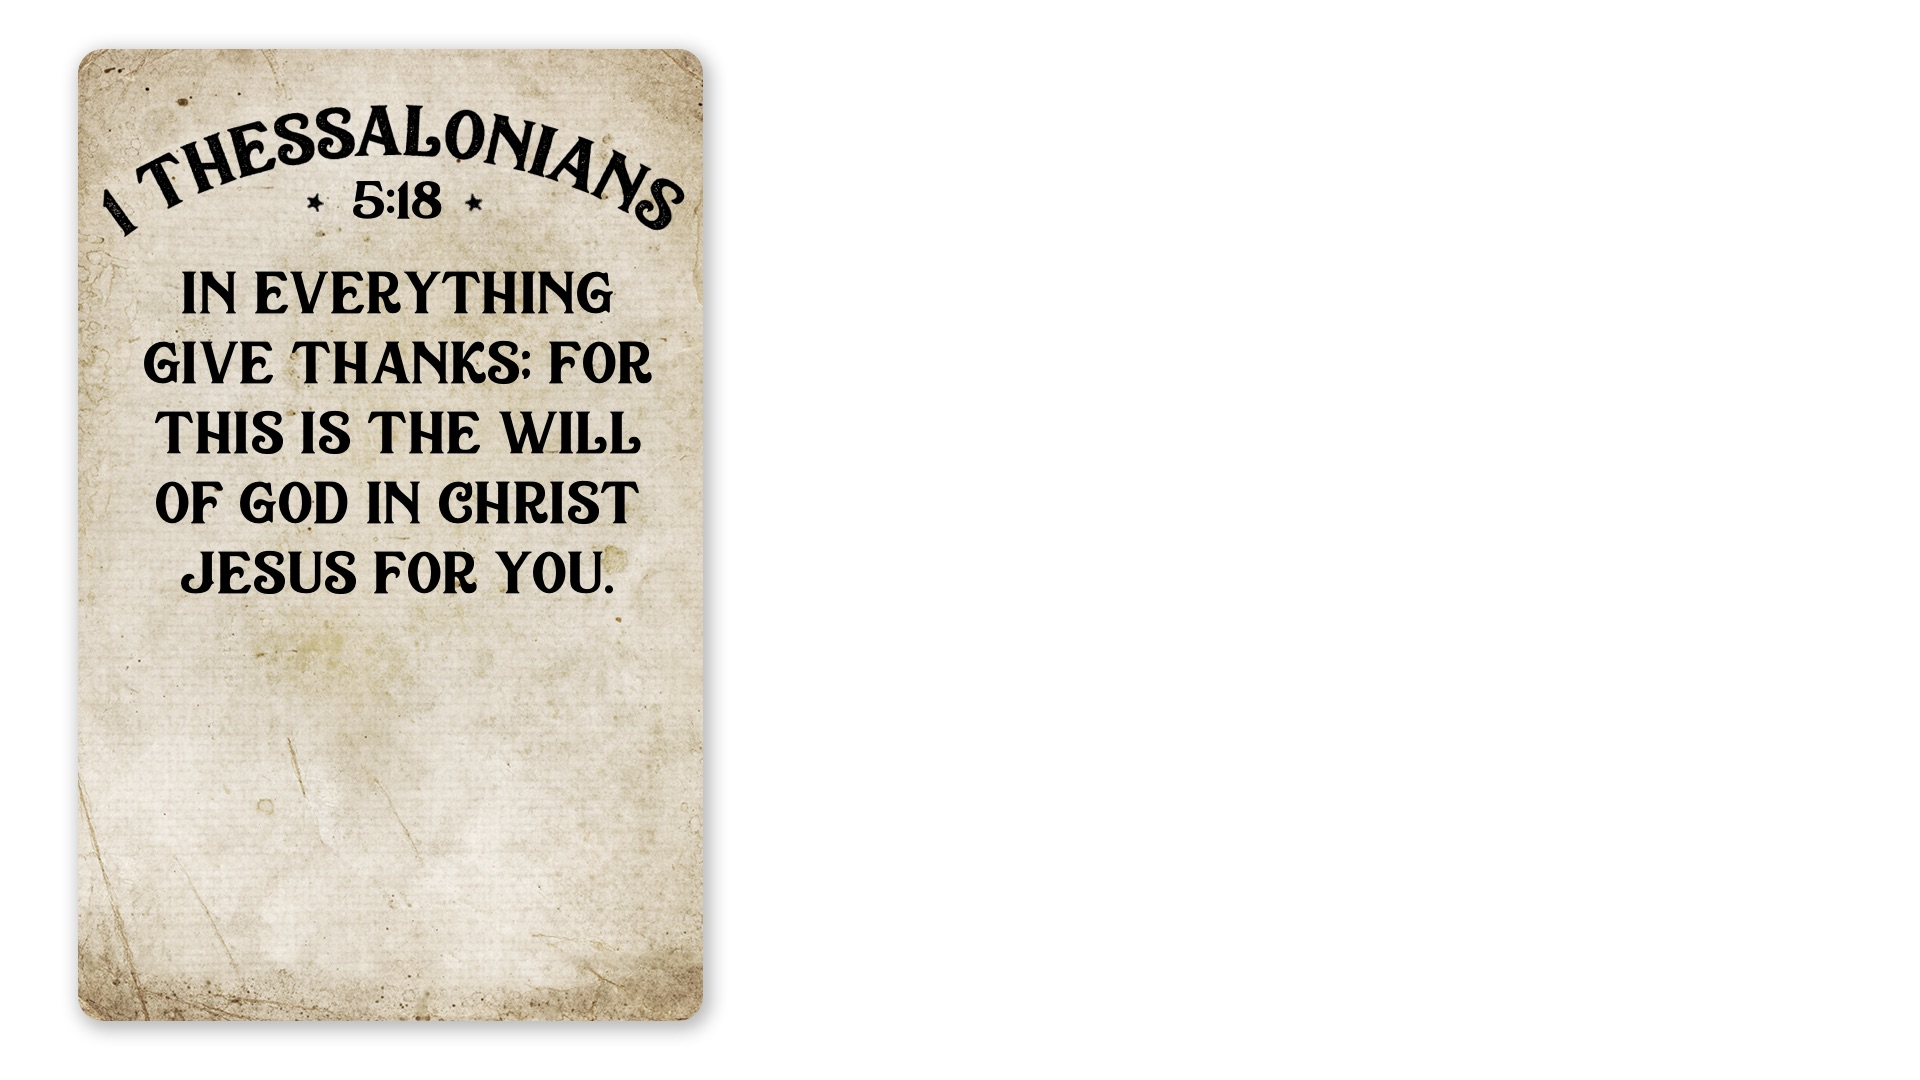 12 - 1 Thessalonians 5:18 (PNG)